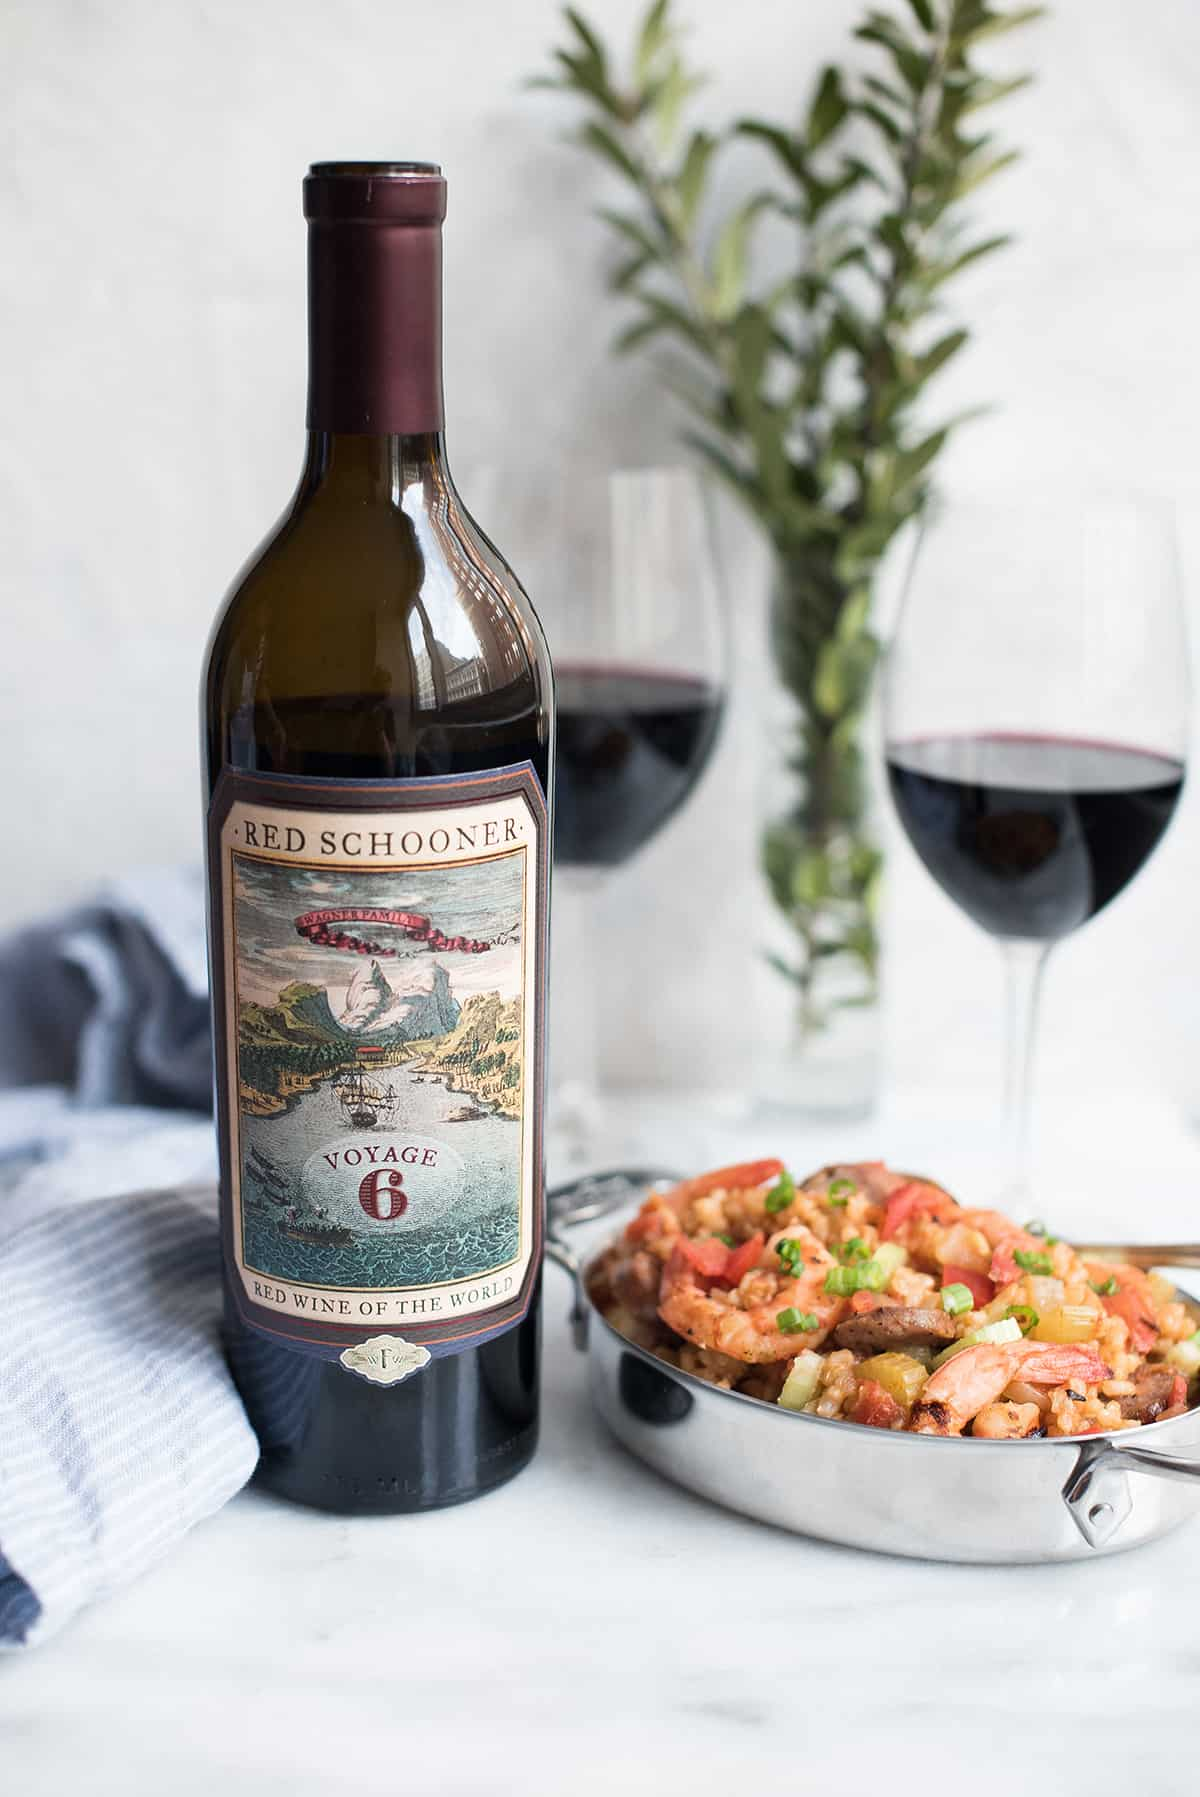 creole style shrimp jambalaya with red schooner wine bottle & glasses